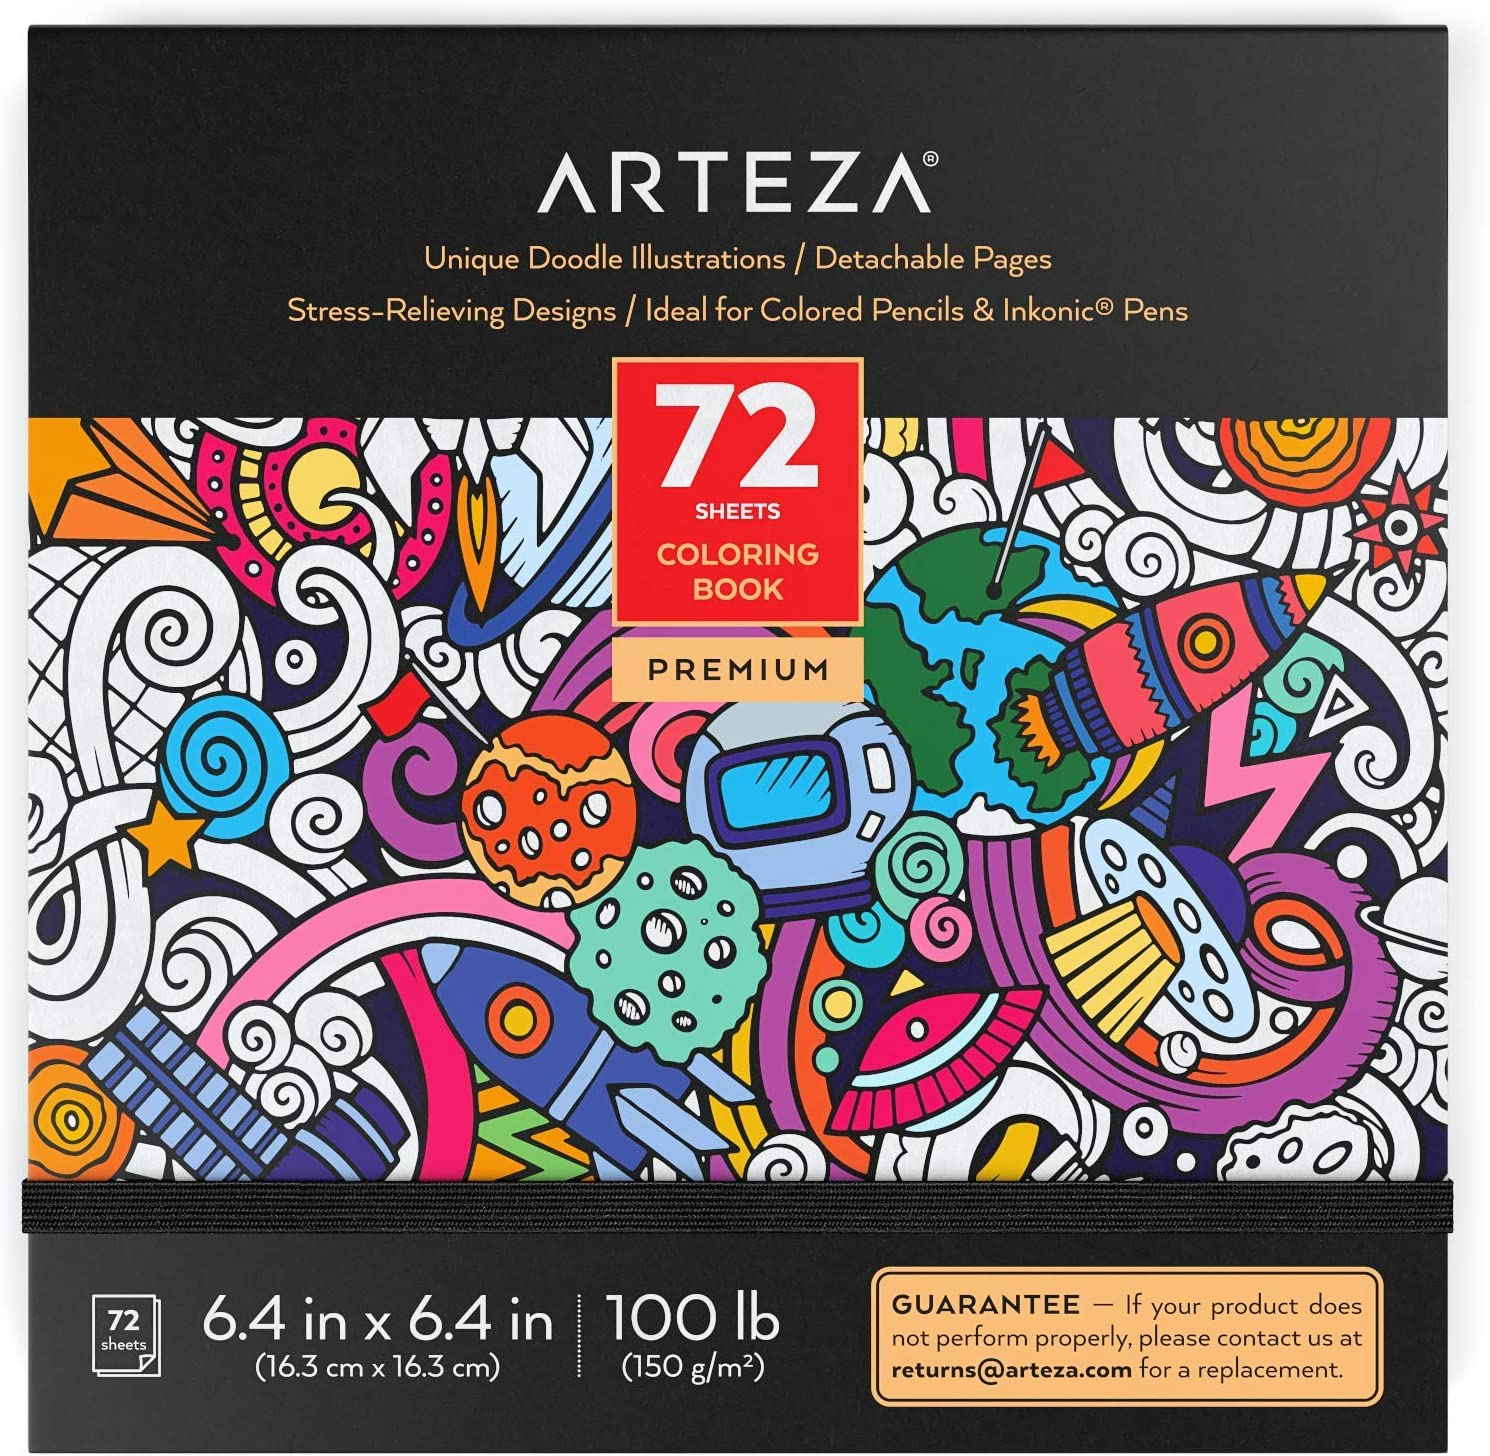 Arteza Doodle Coloring Book for Adults, Black Outlines, 72 Relaxing Coloring Pages for Relieving Stress and Anxiety for Adults and Teens, Encourages Meditation, Promotes Mindfulness